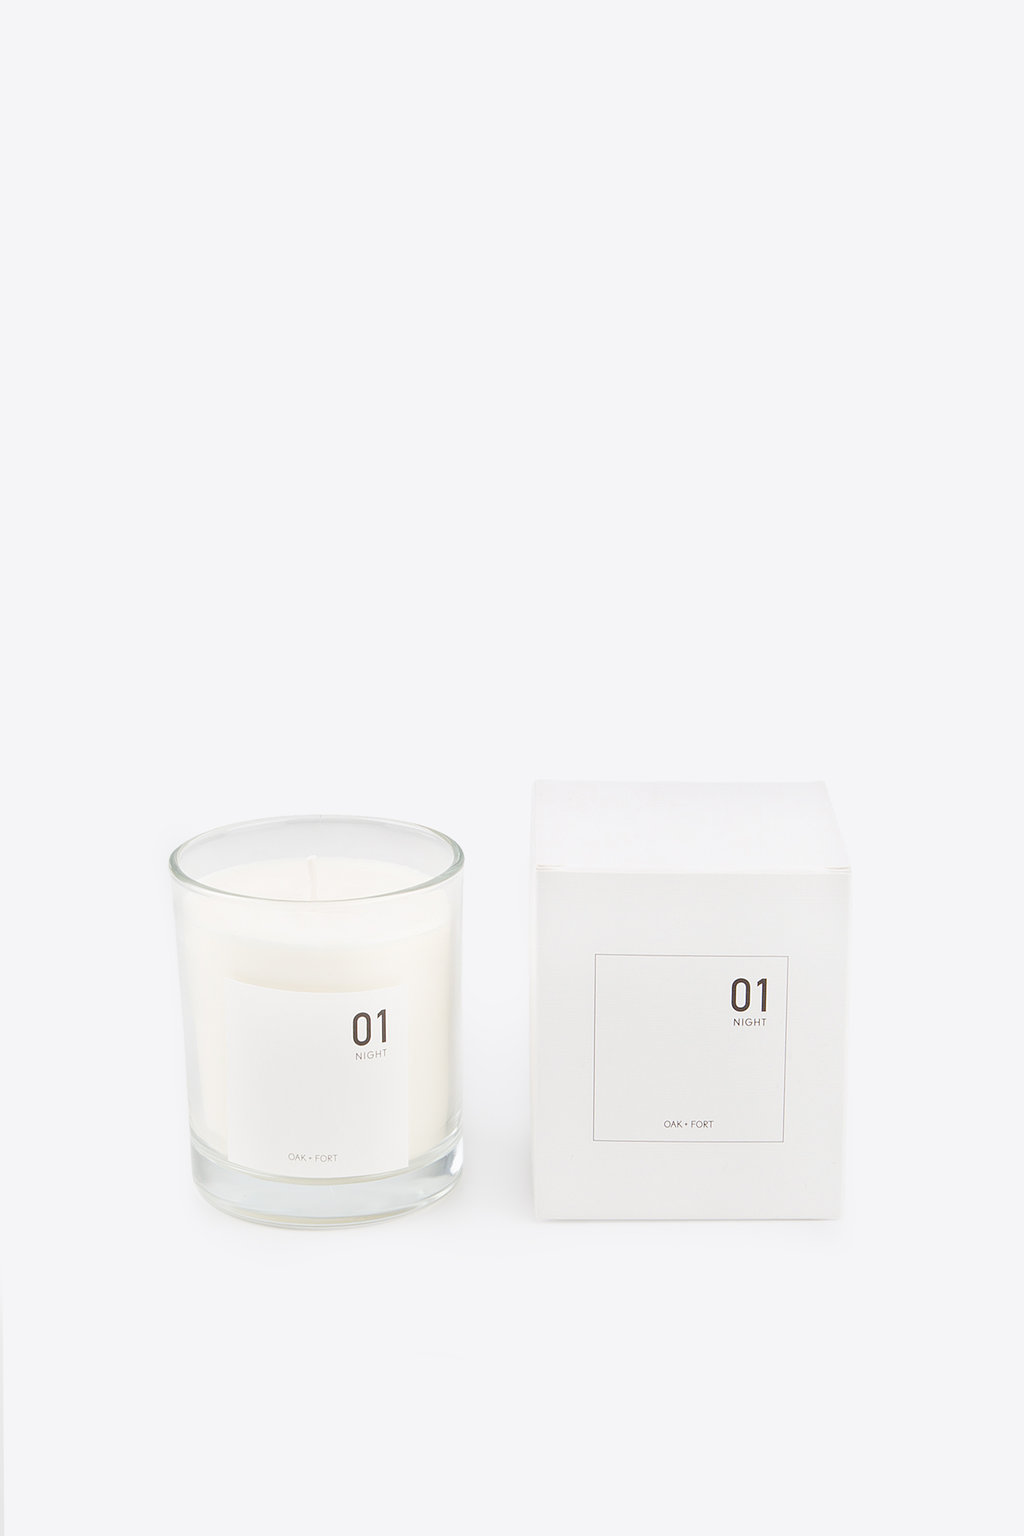 01 Night Candle 1035 Cream 1